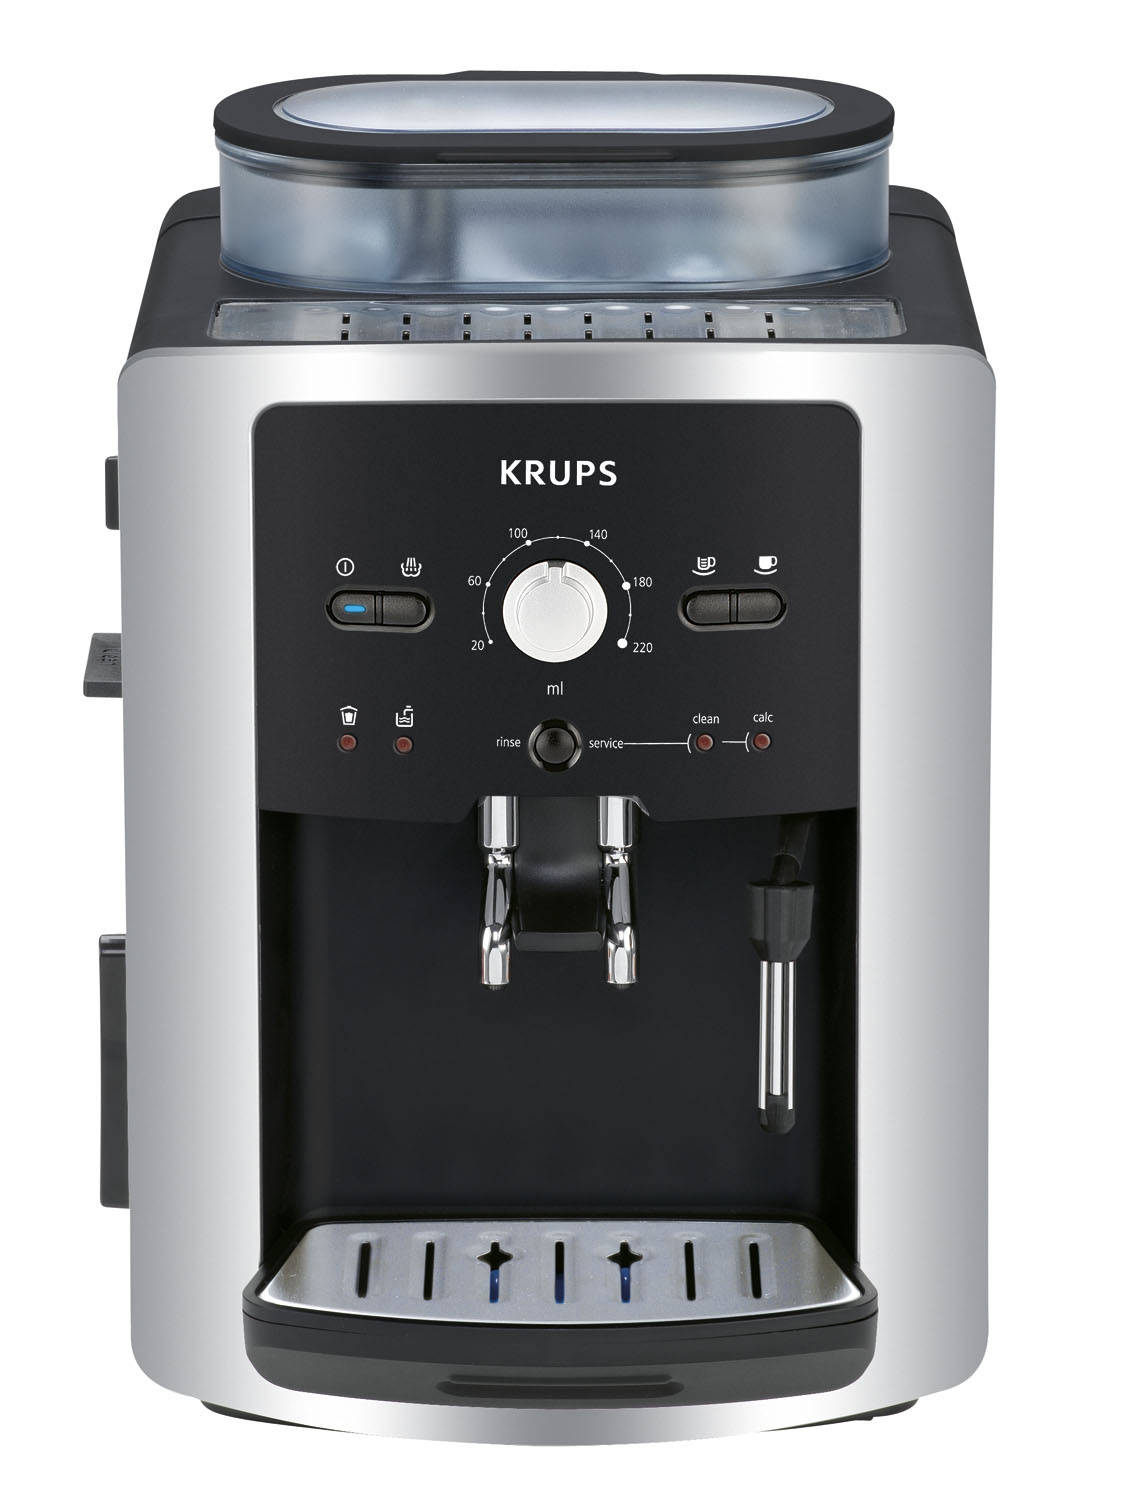 Krups Espresso Coffee Maker Xp1500 Manual : Krups by Giles McWilliam at Coroflot.com